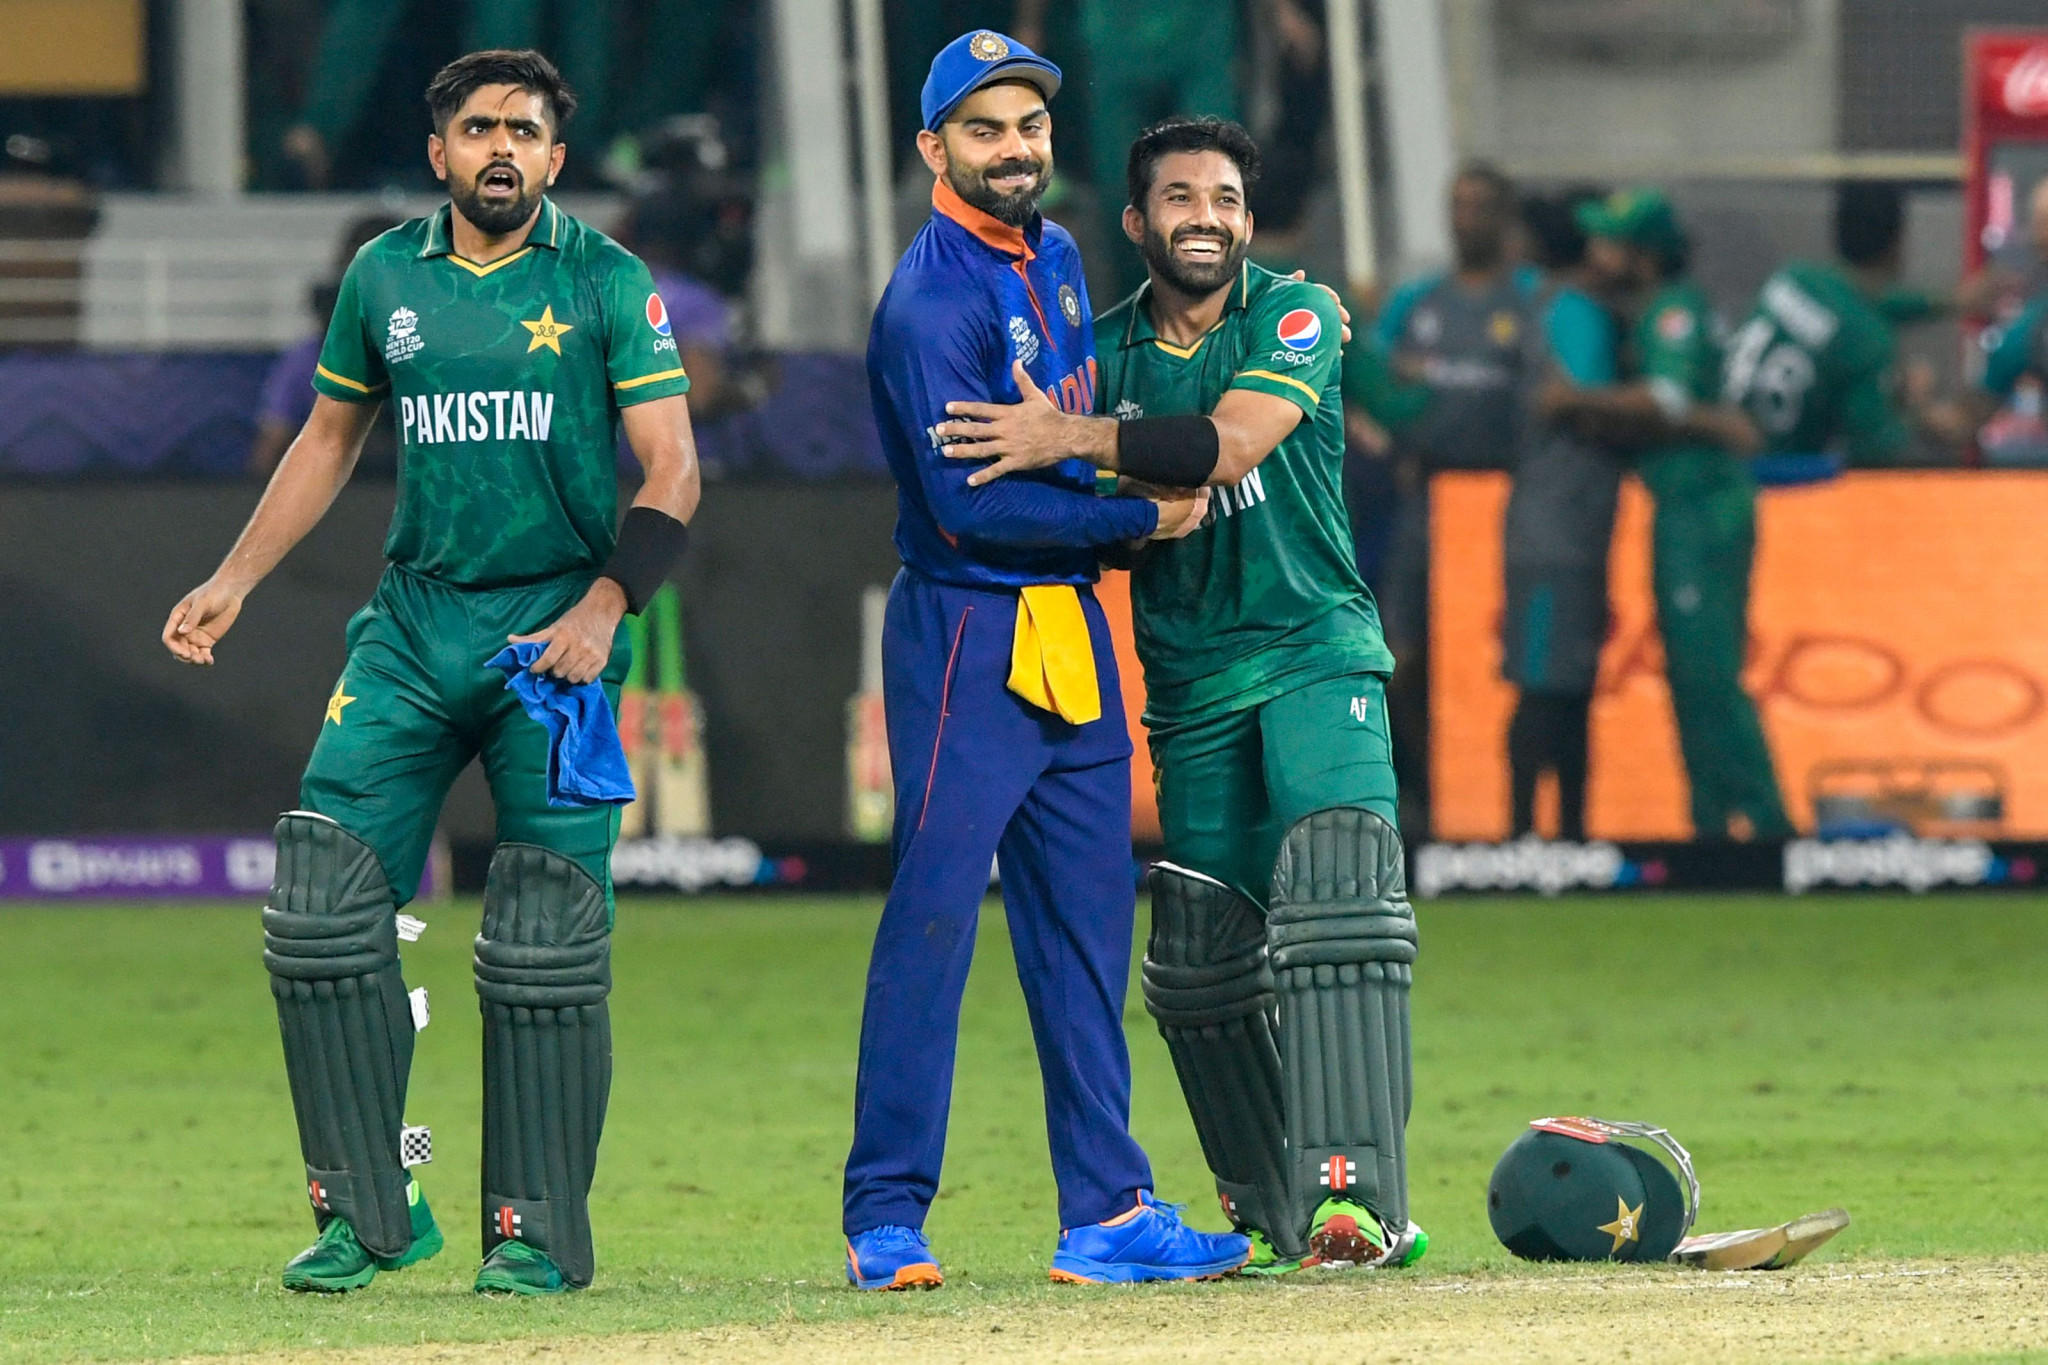 Pakistan claim famous win over arch rivals India at Men's T20 World Cup